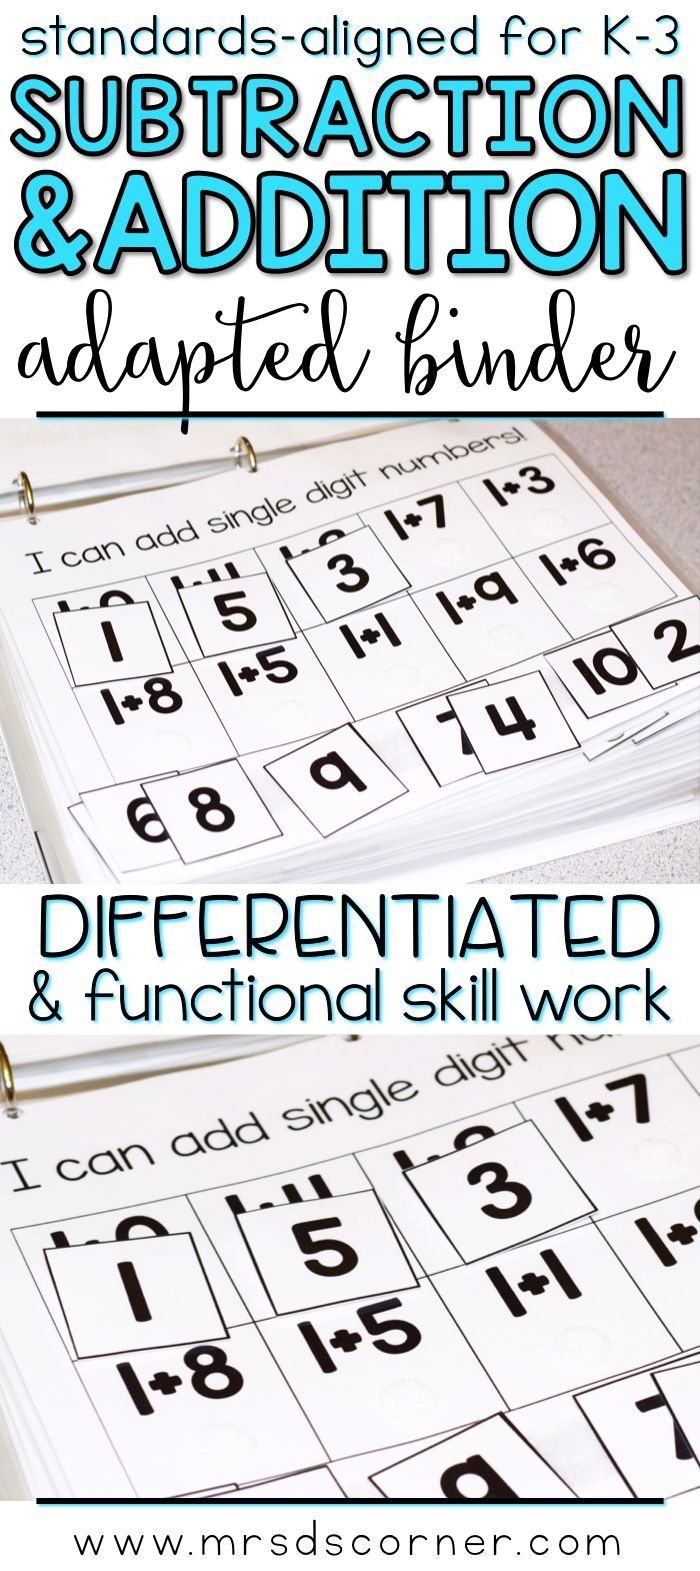 ADDITION AND SUBTRACTION * Functional and differentiated skill work that covers adding and subtracting mathematics standards-aligned topics for grades K-3, this Addition and Subtraction adapted work binder is the perfect addition to any elementary special education classroom. Includes Single digit, Double- and Triple- digit addition and subtraction, Missing Addends, Word Problems. Adapted Work Binders only at Mrs. D's Corner.